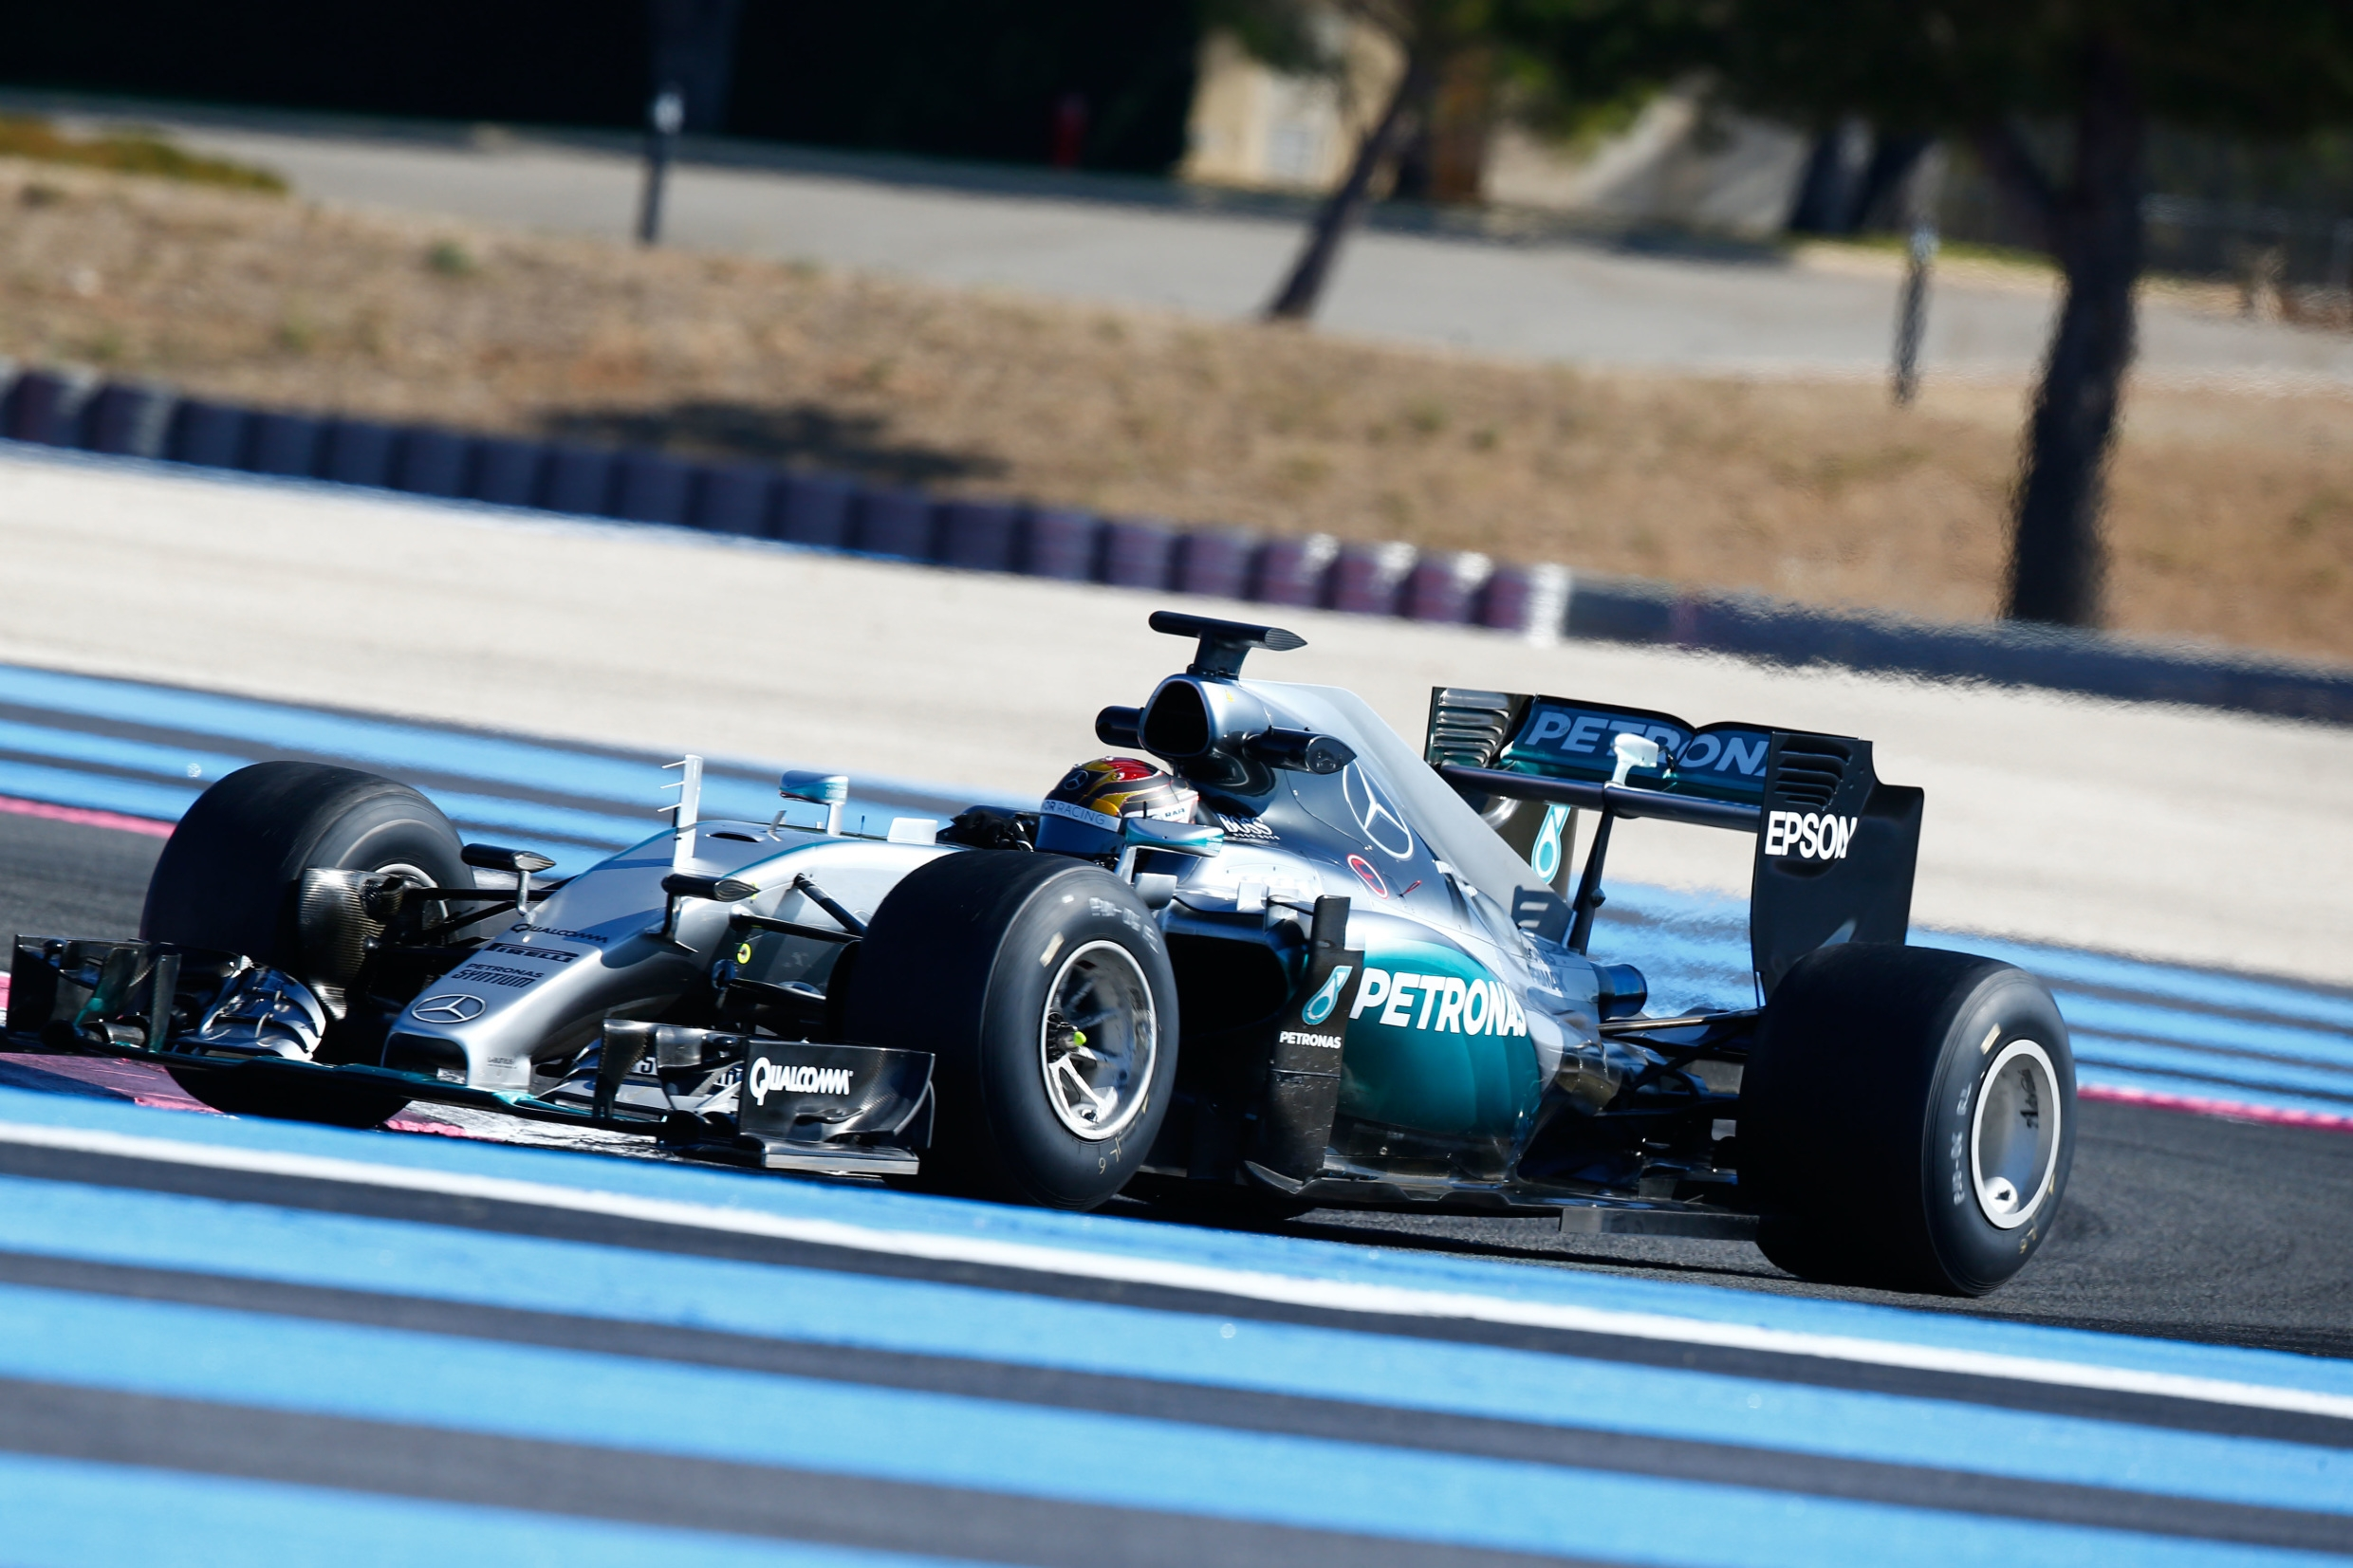 Hamilton pips Bottas for Mercedes one-two at Paul Ricard